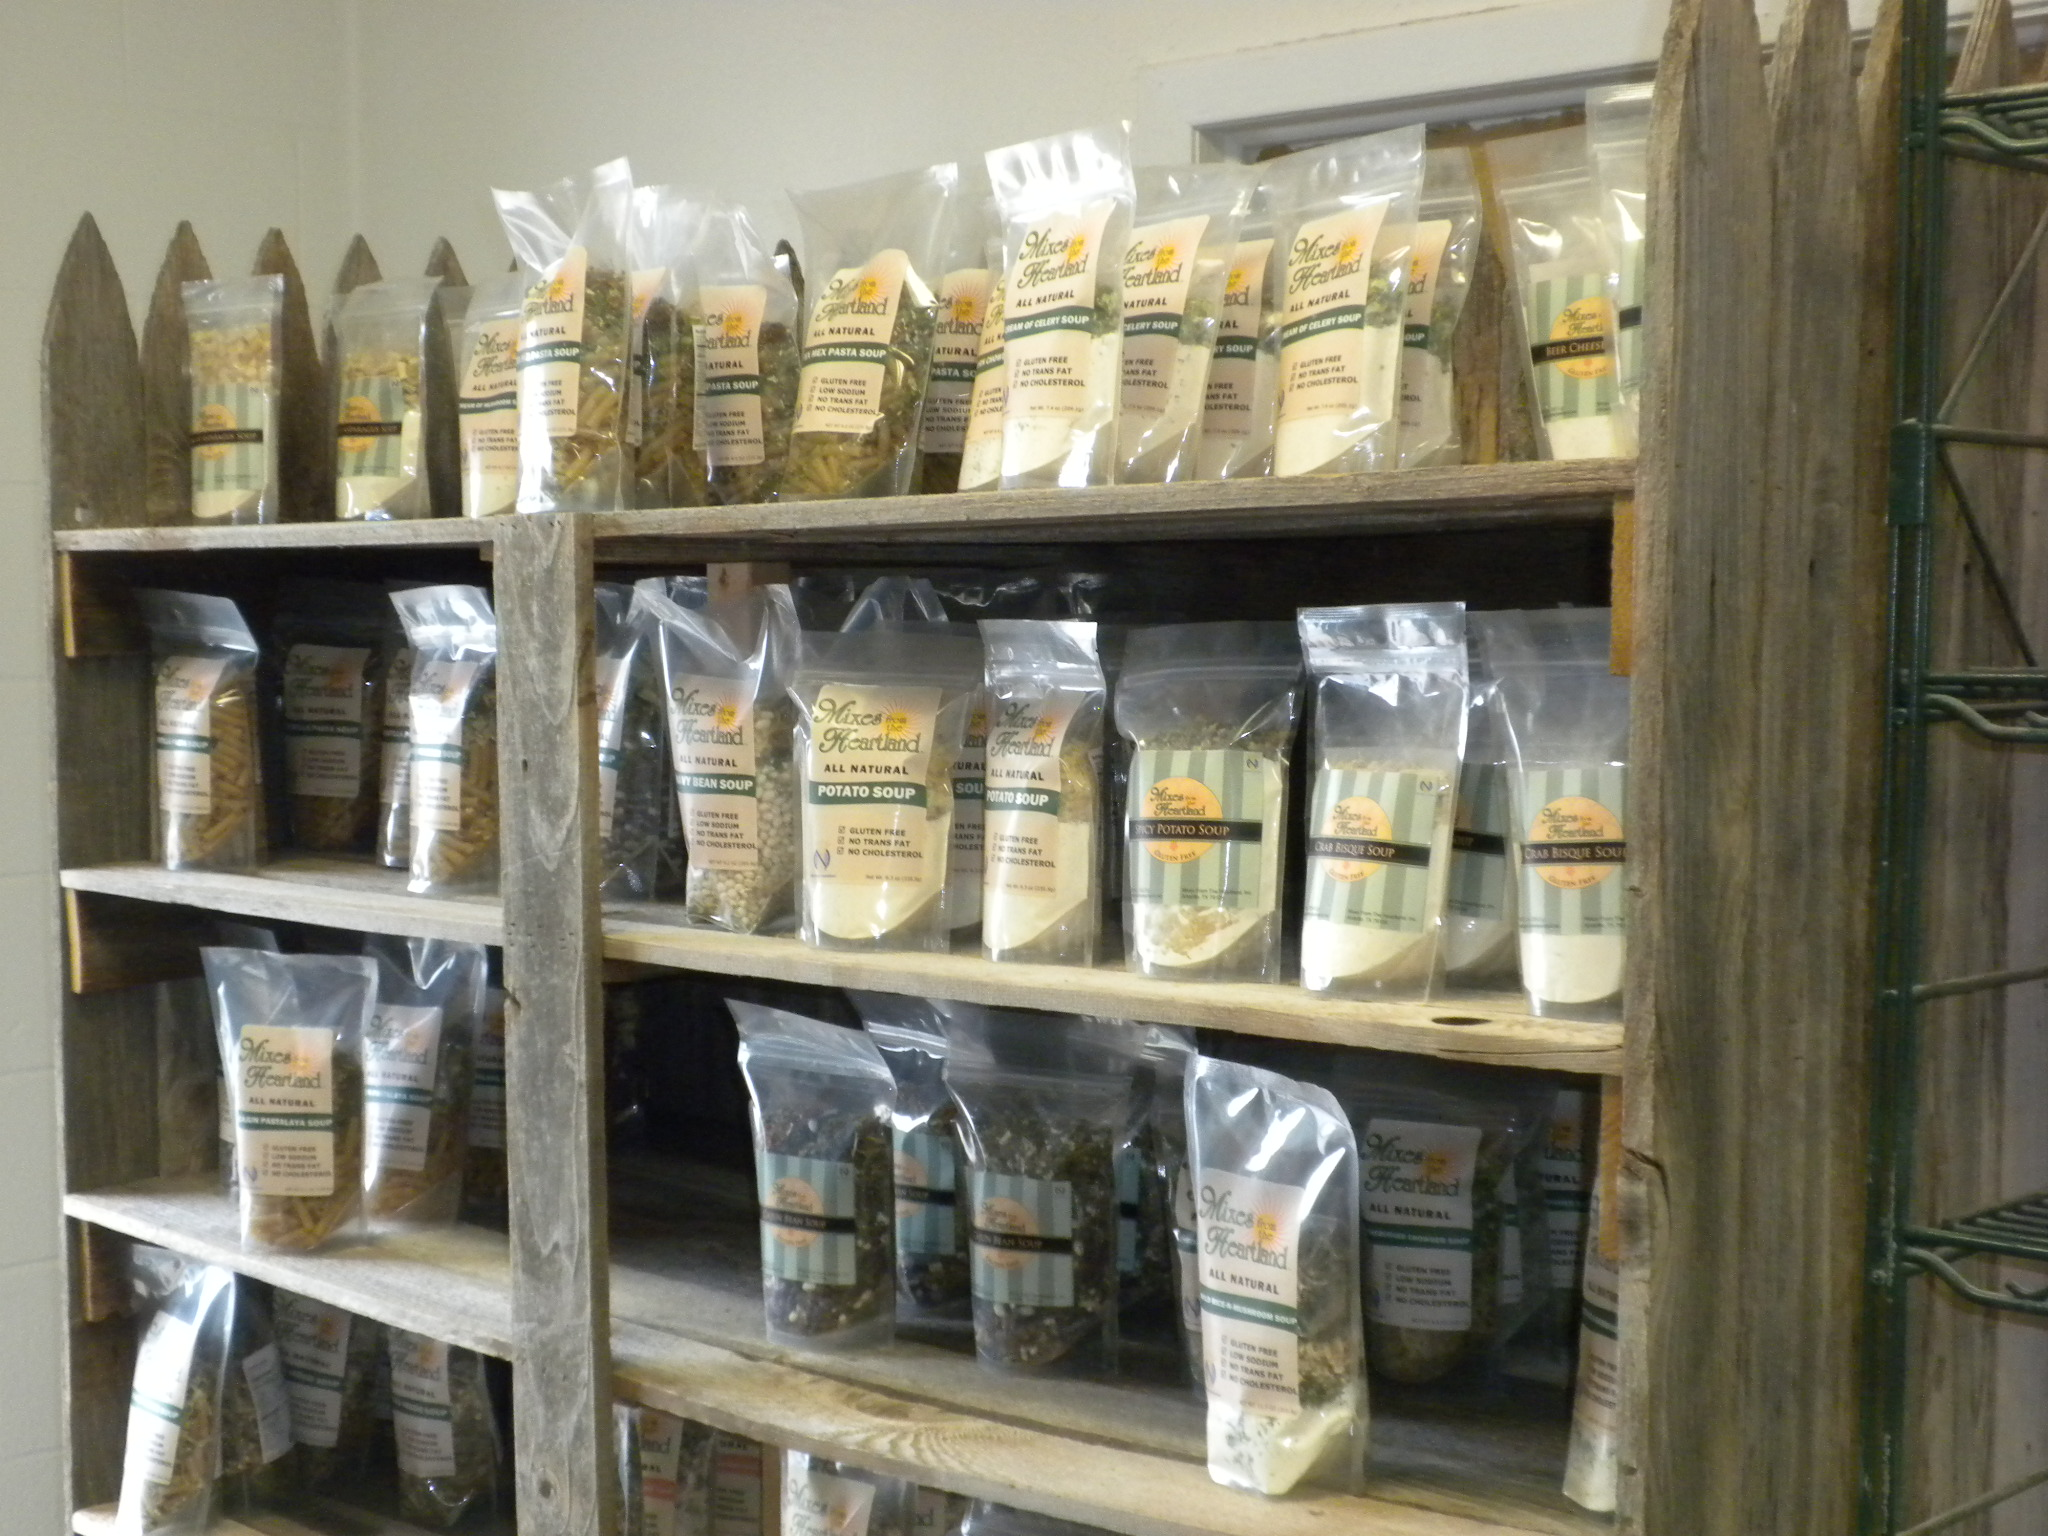 A Little Tour Of The Mixes From The Heartland Plant